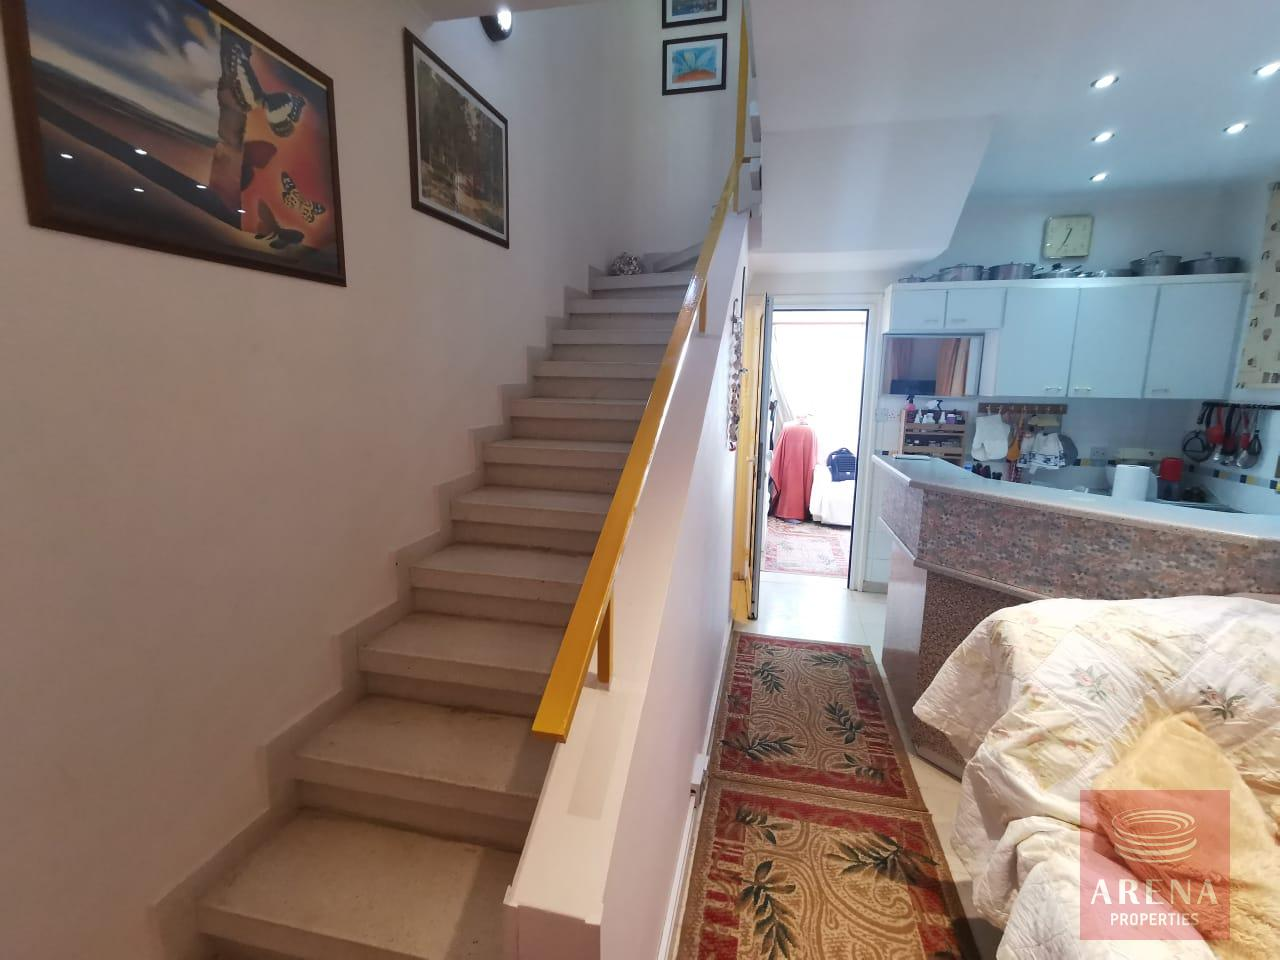 Townhouse in Meneou - stairs